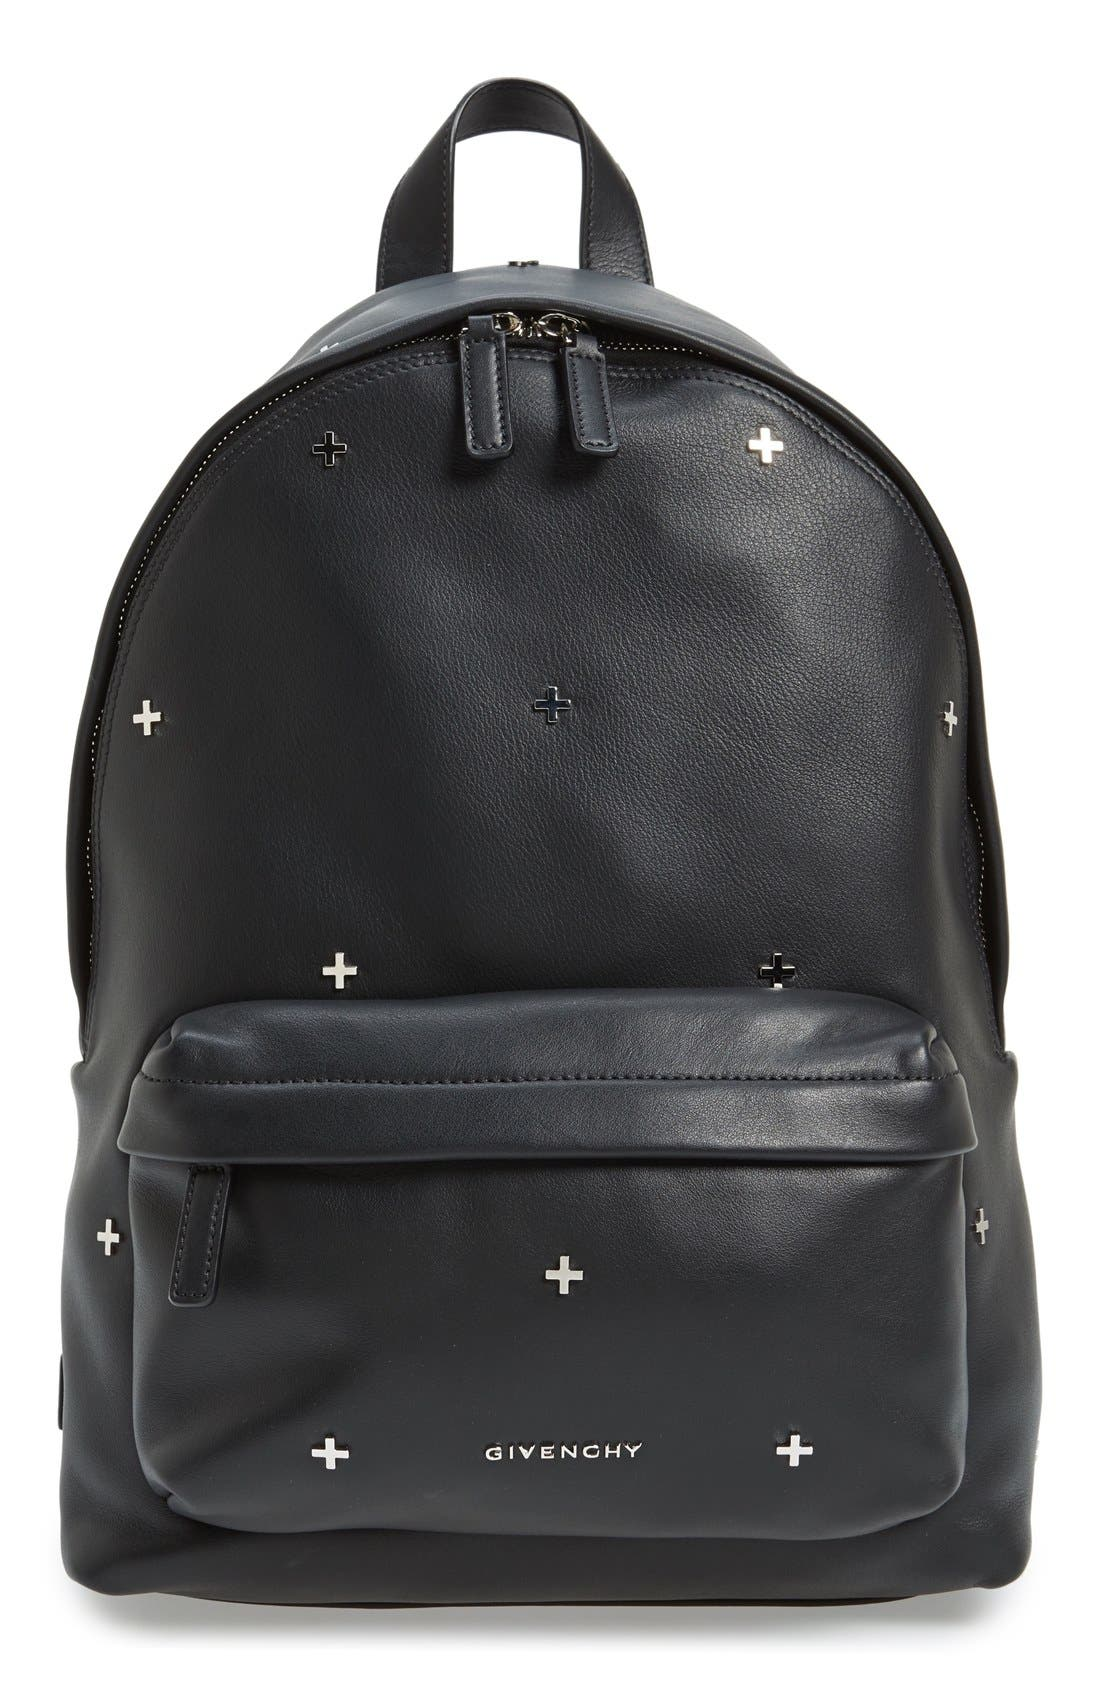 GIVENCHY,                             Metal Cross Embellished Calfskin Leather Backpack,                             Main thumbnail 1, color,                             001